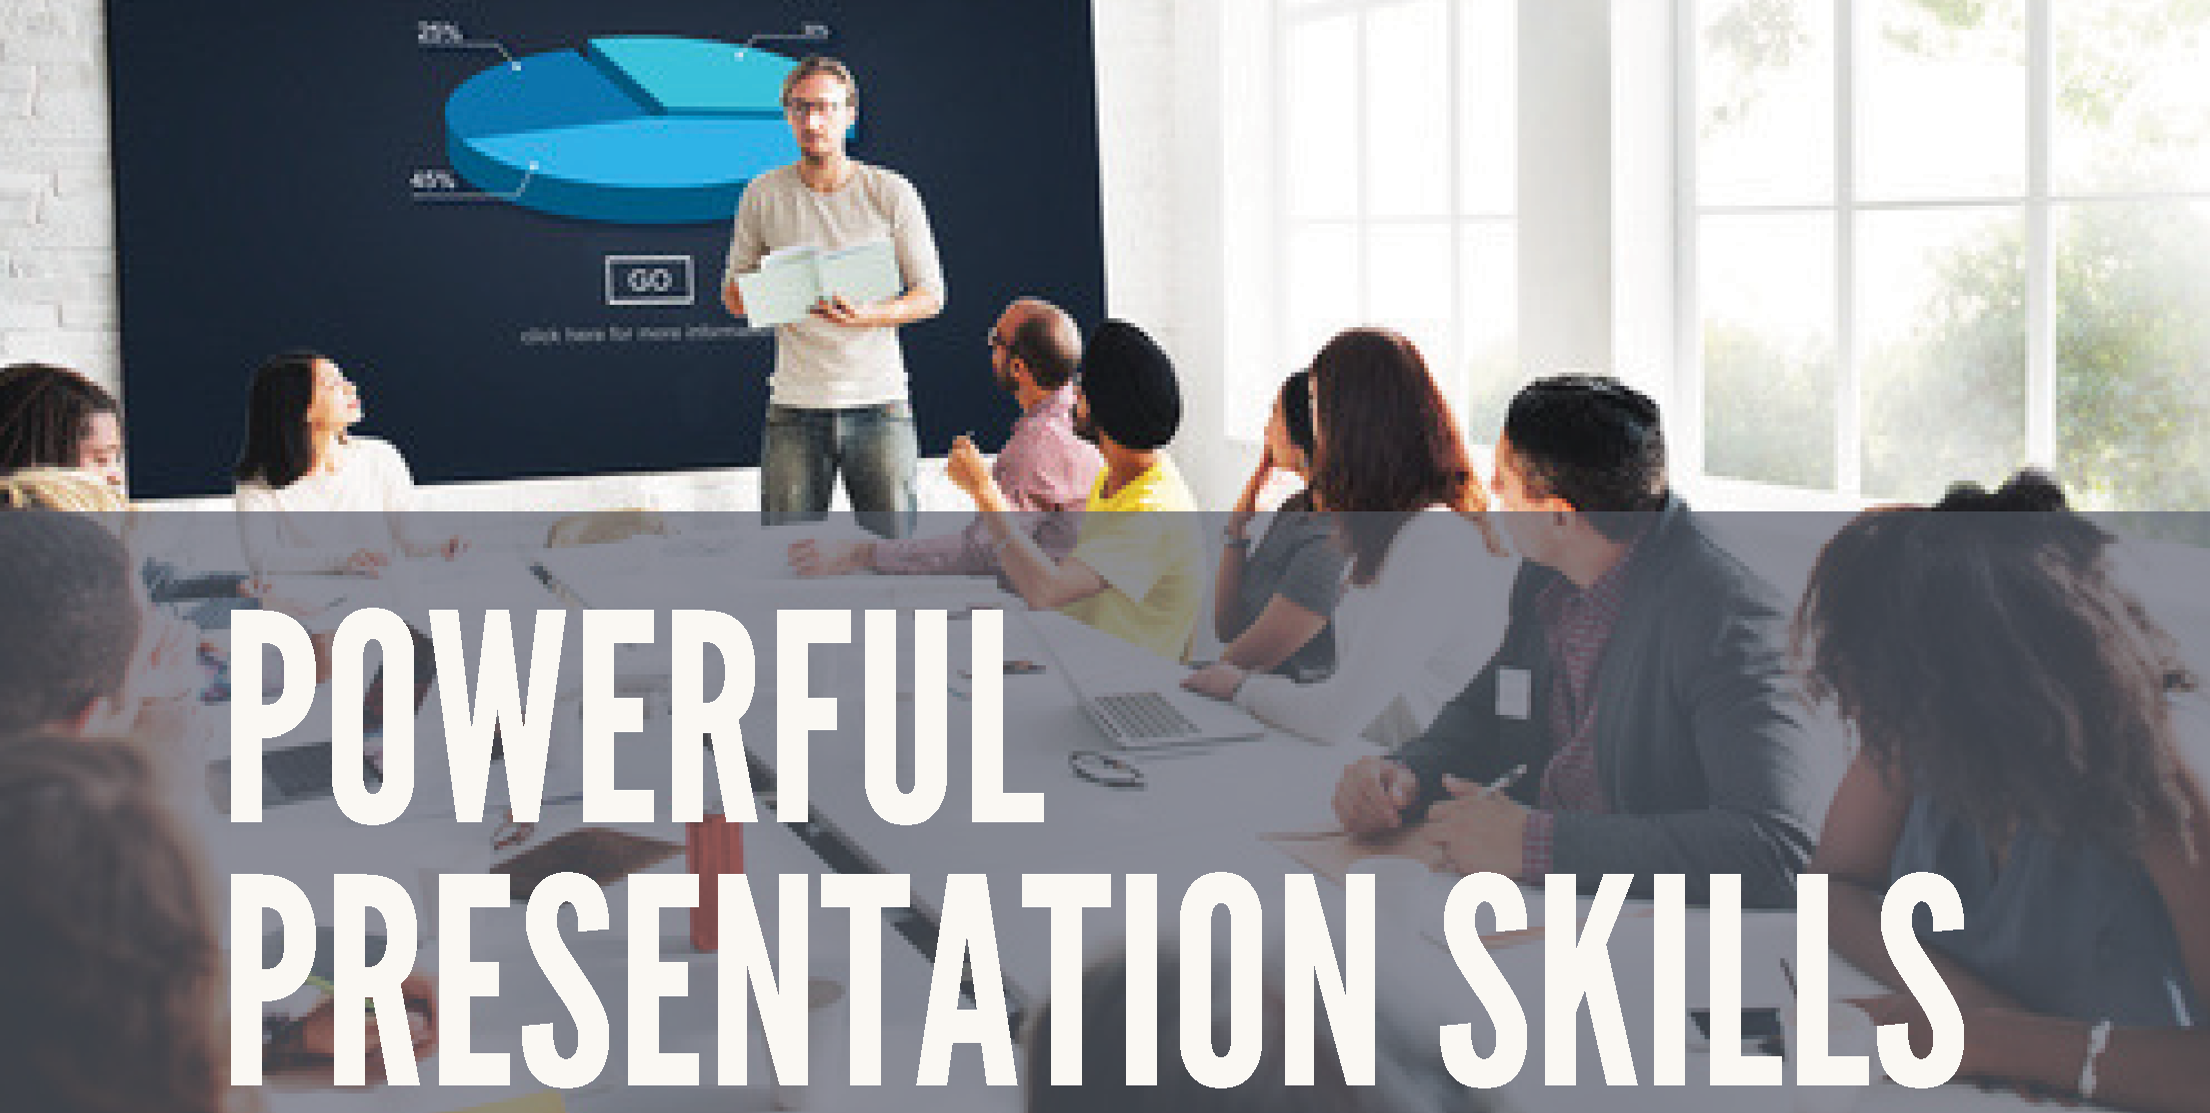 Powerful Presentation Skills - Presenting information clearly and effectively is a key skill to get your message or opinion across and, today, presentation skills are required in almost every field, especially in leadership. Whether you are a student, administrator or executive, if you wish to start up your own business, apply for a grant or stand for an elected position, you may very well be asked to make a presentation. The Coles Group understands this can be a very daunting prospect. Our workshop is designed to help the participant develop winning presentation skills. Course Duration: 1-2 Days